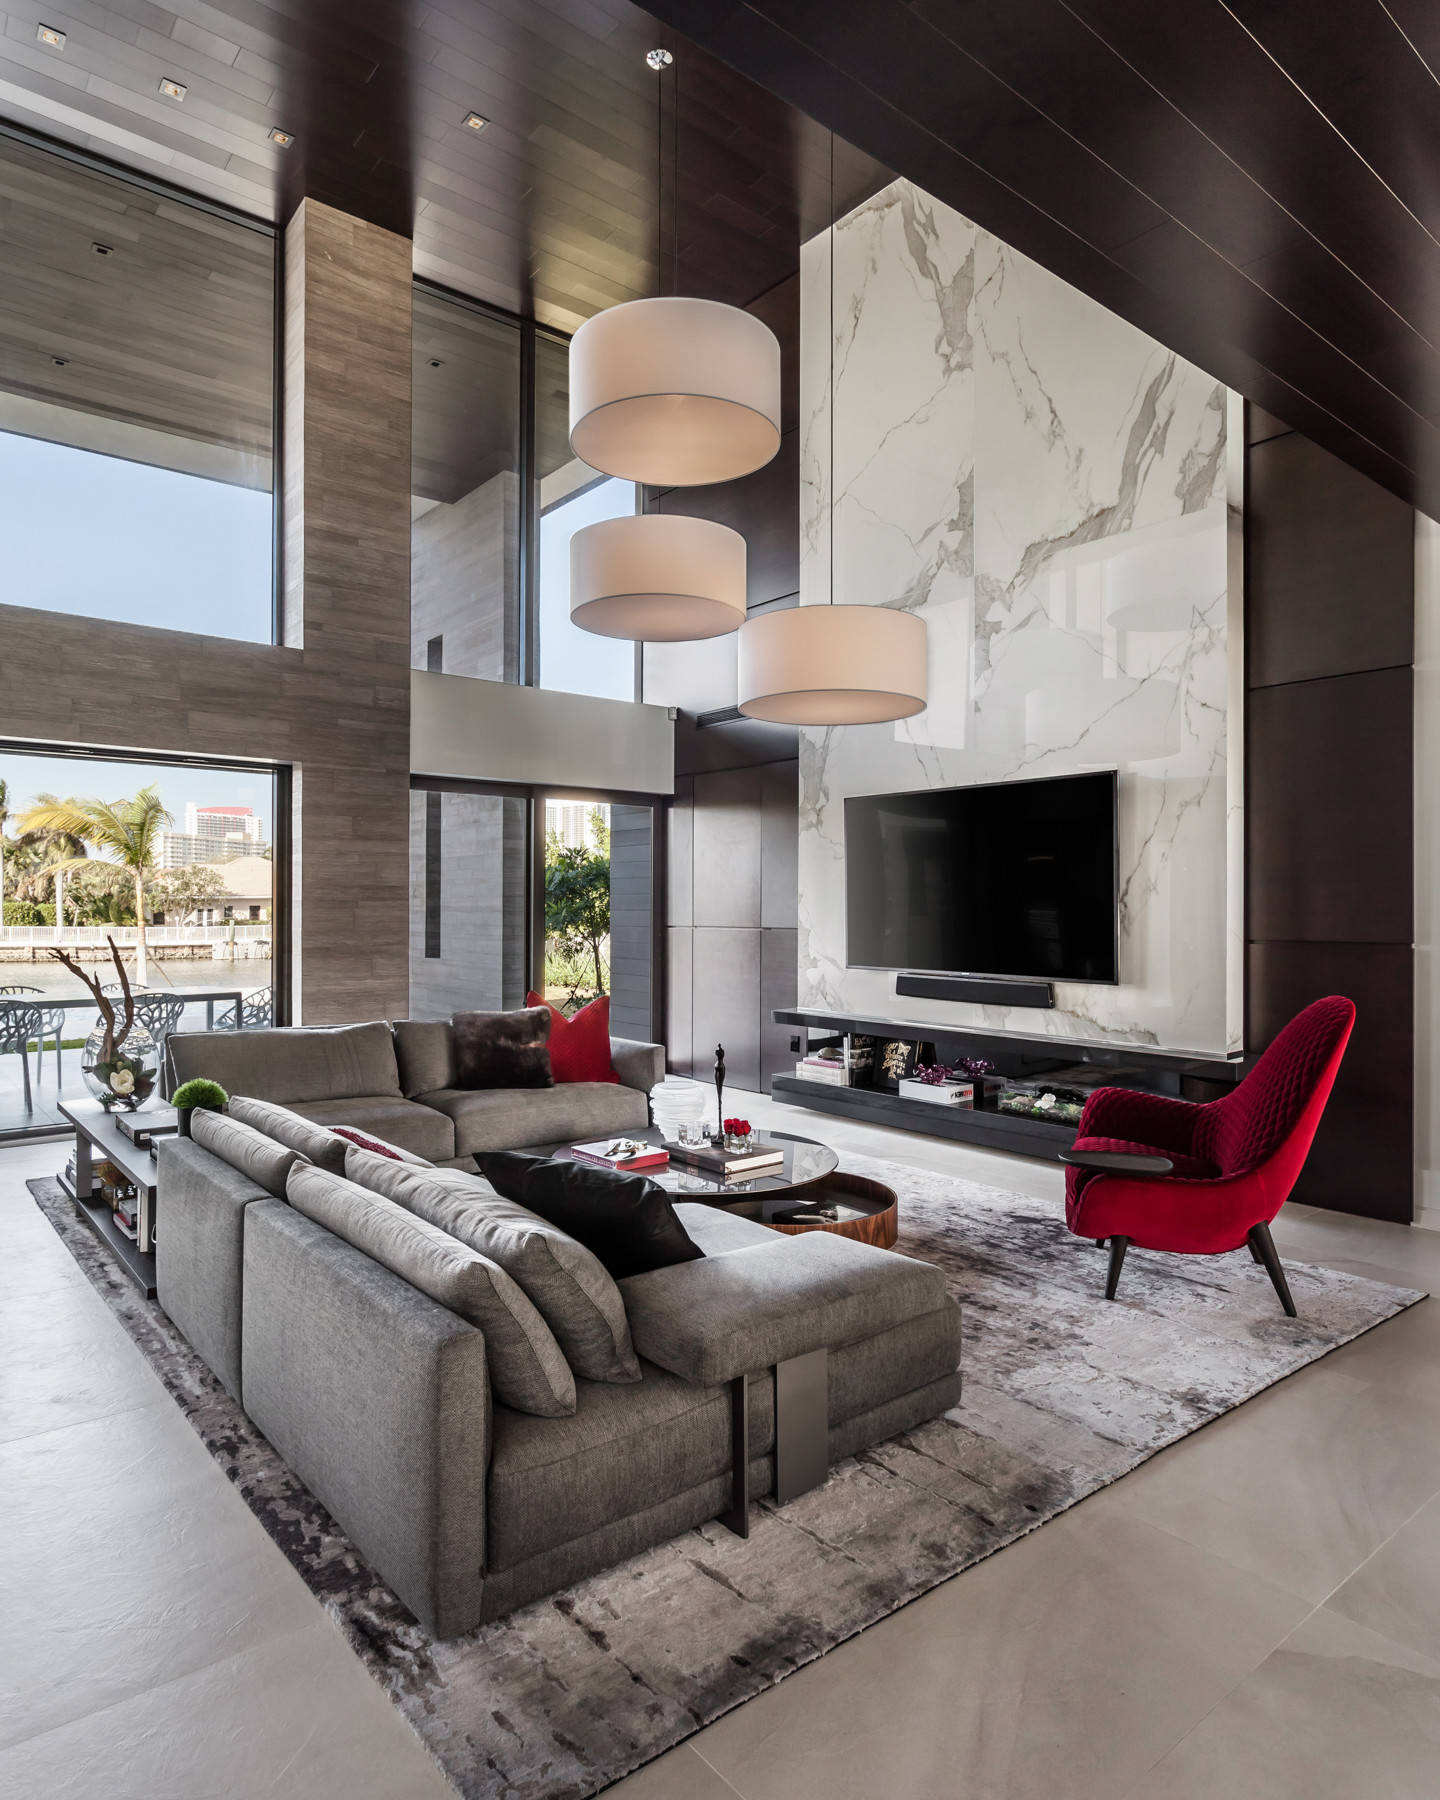 75 Beautiful Huge Living Room Pictures Ideas February 2021 Houzz